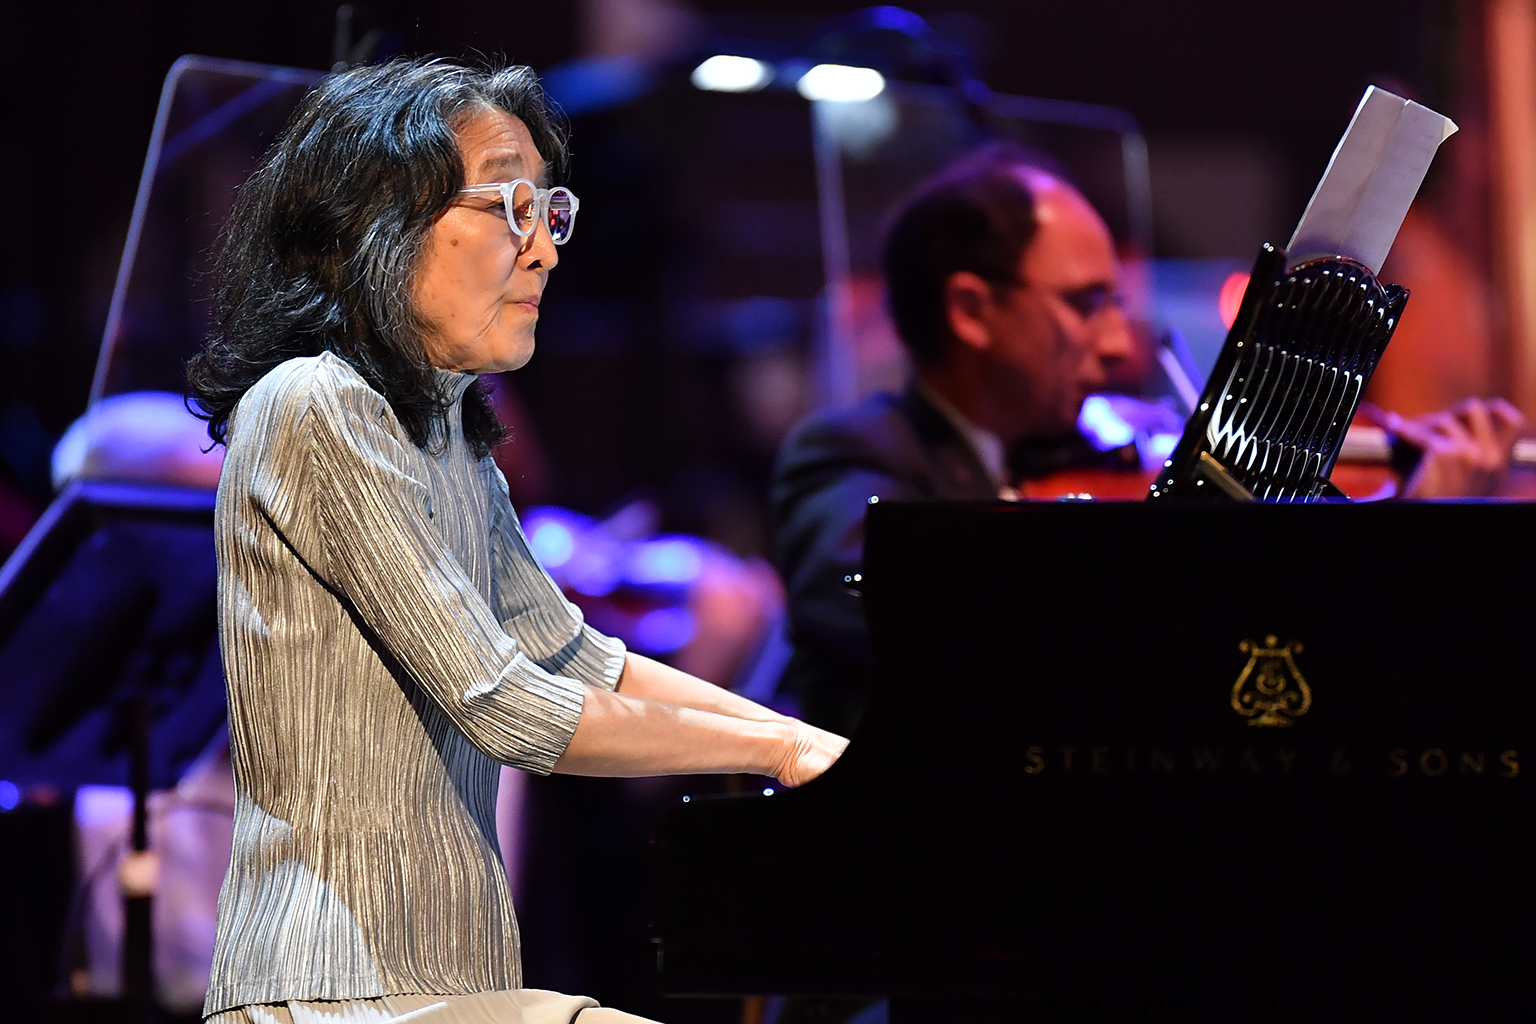 Mitsuko Uchida at the Proms